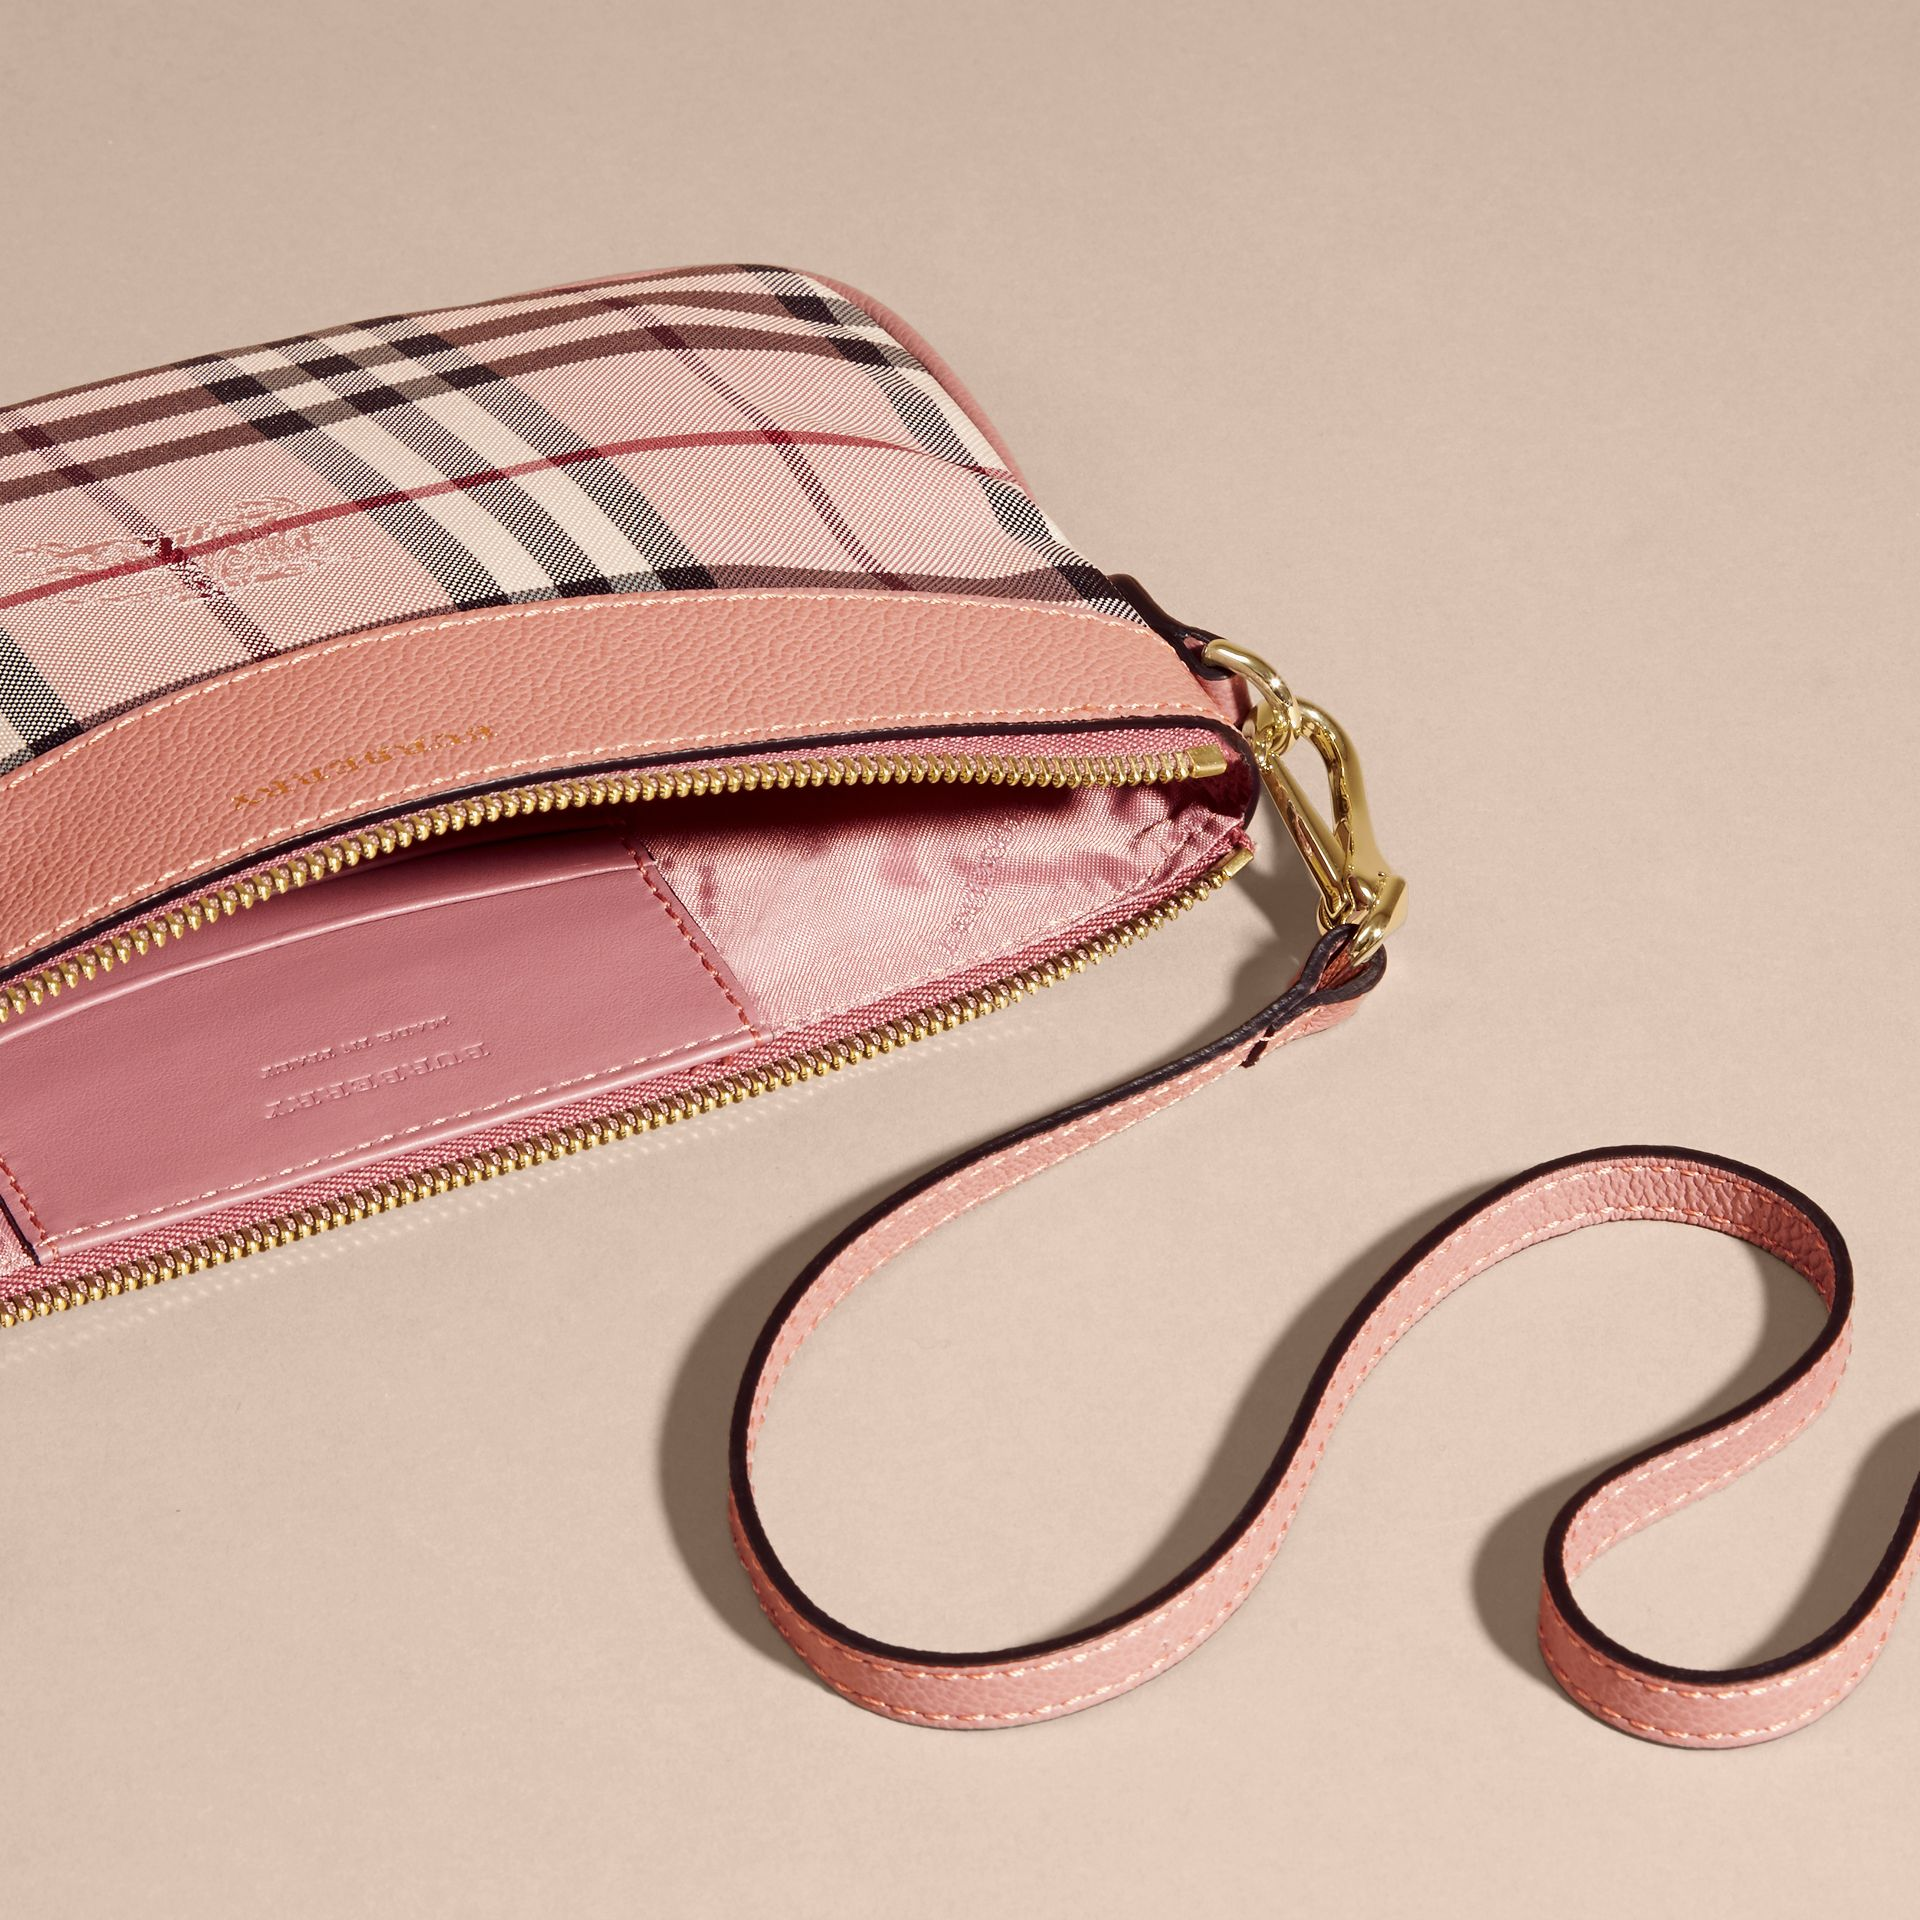 Ash rose/ dusty pink Horseferry Check and Leather Clutch Bag Ash Rose/ Dusty Pink - gallery image 6